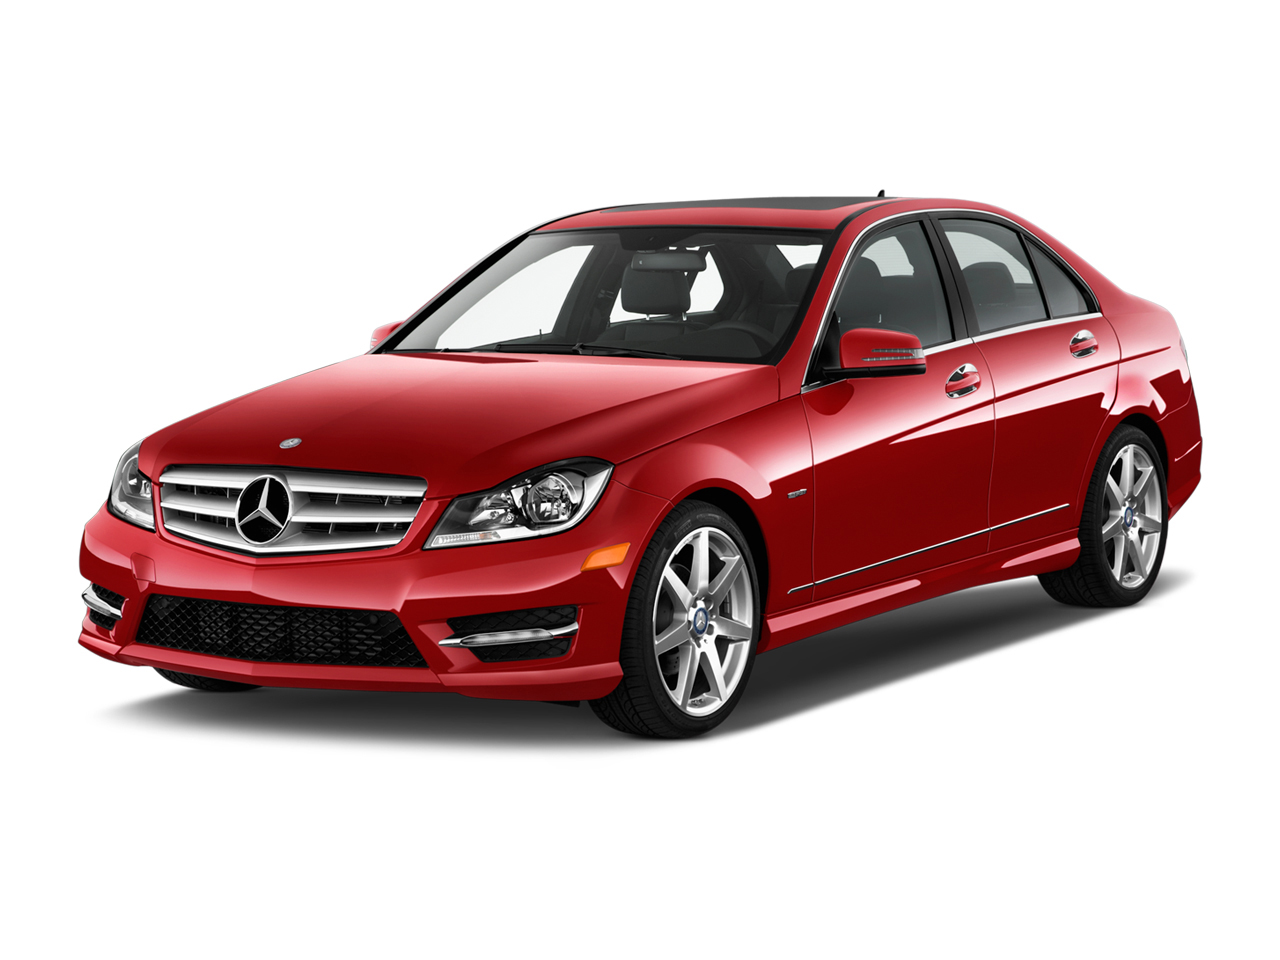 2013 mercedes benz c class review ratings specs prices. Black Bedroom Furniture Sets. Home Design Ideas